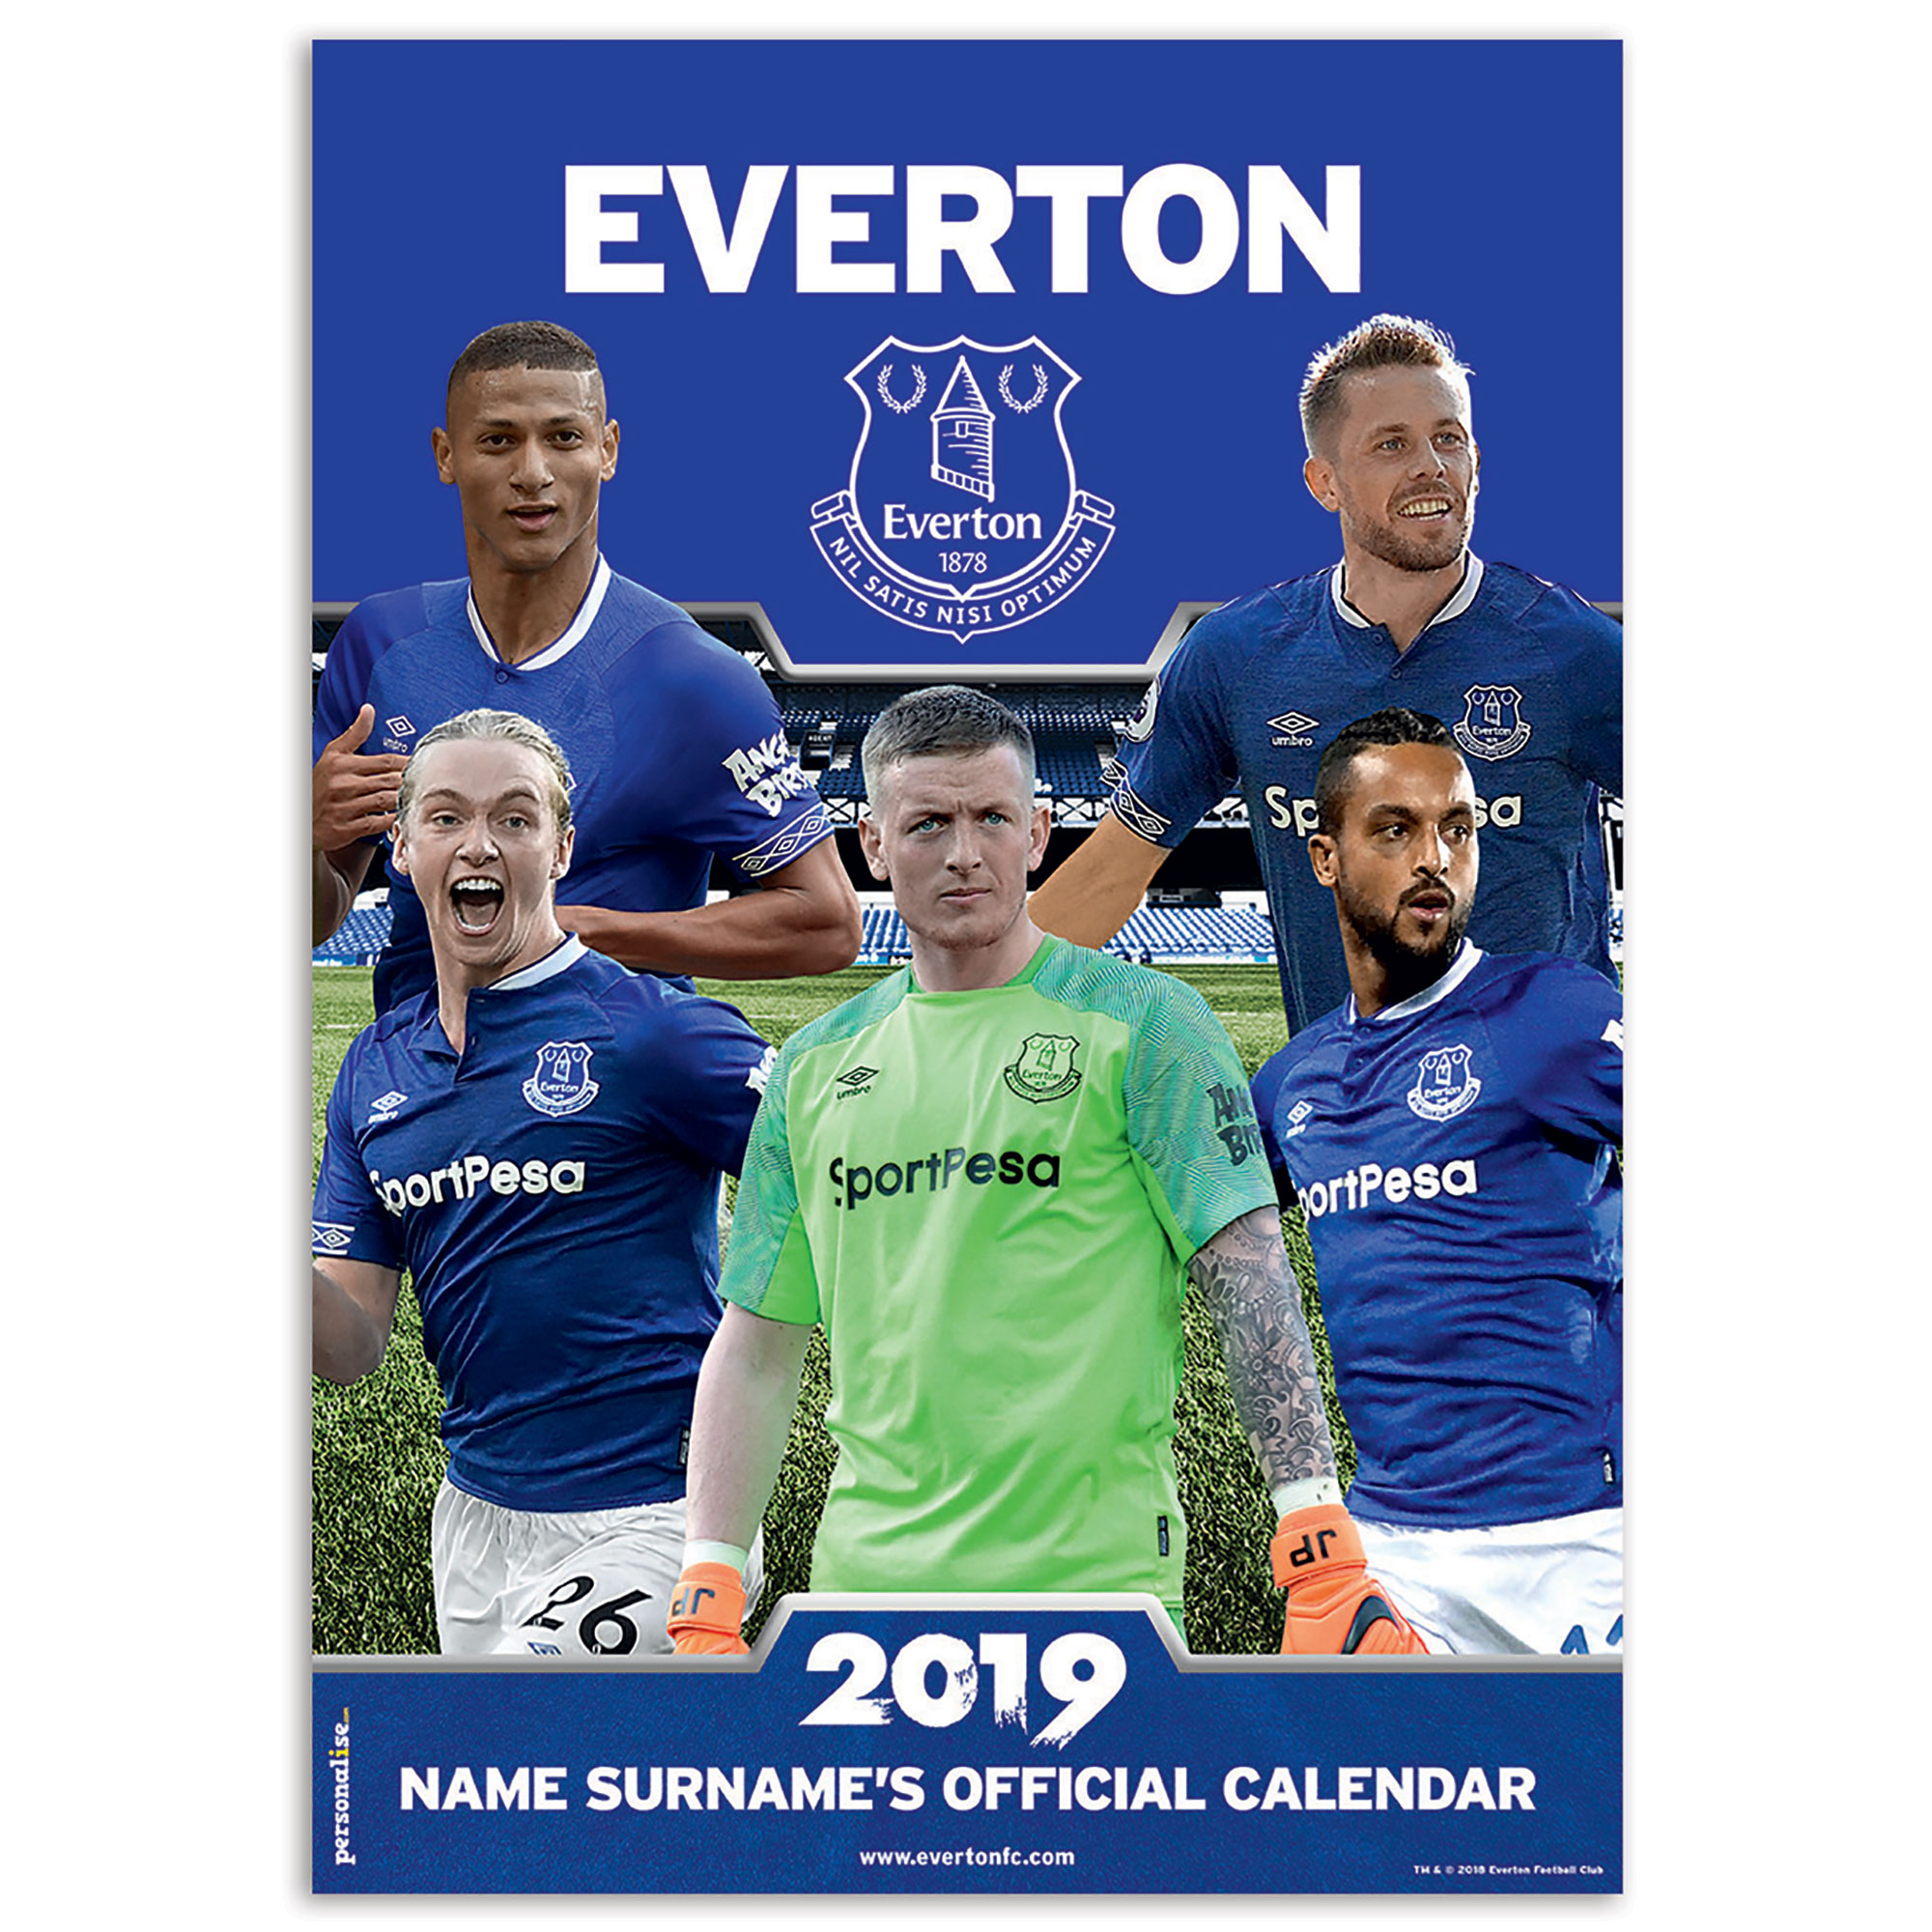 Everton 2013 Personalised Calendar